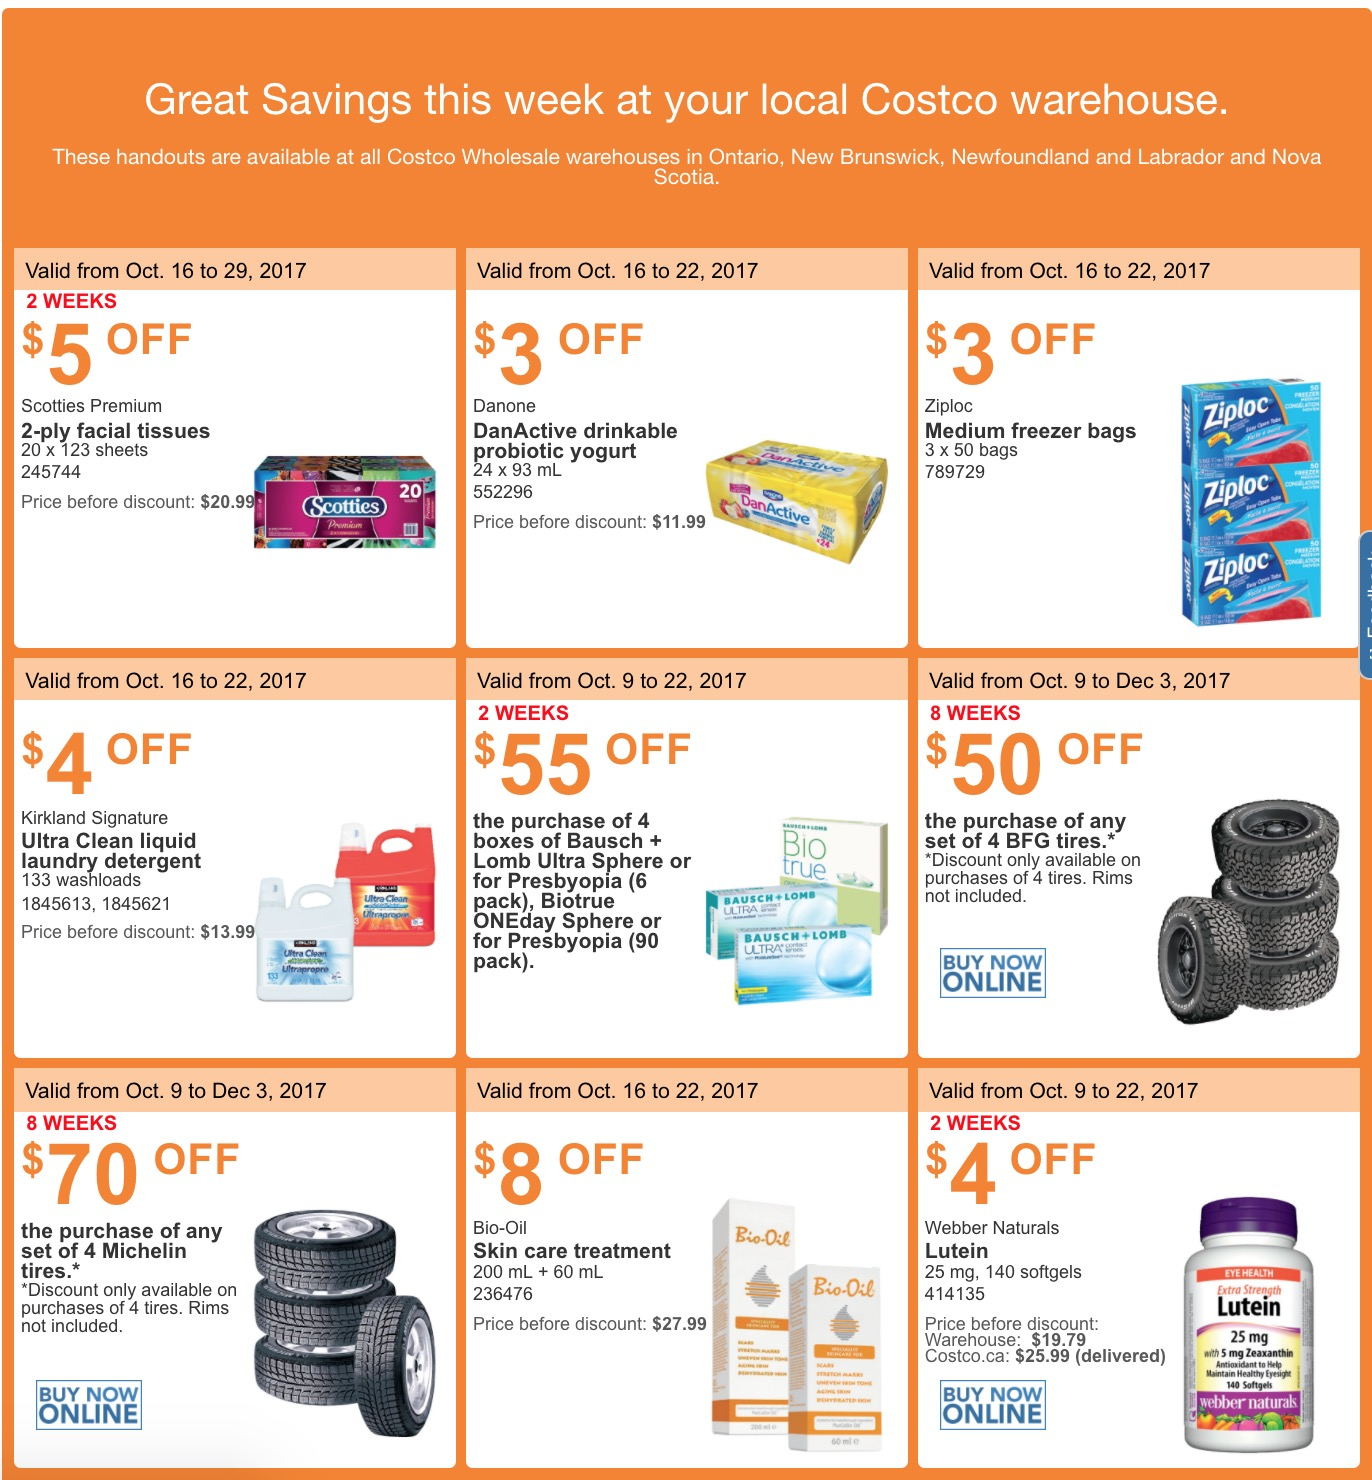 Costco canada weekly handouts coupons flyers instant savings for ontario new brunswick newfoundland labrador and nova scotia provinces from october 16